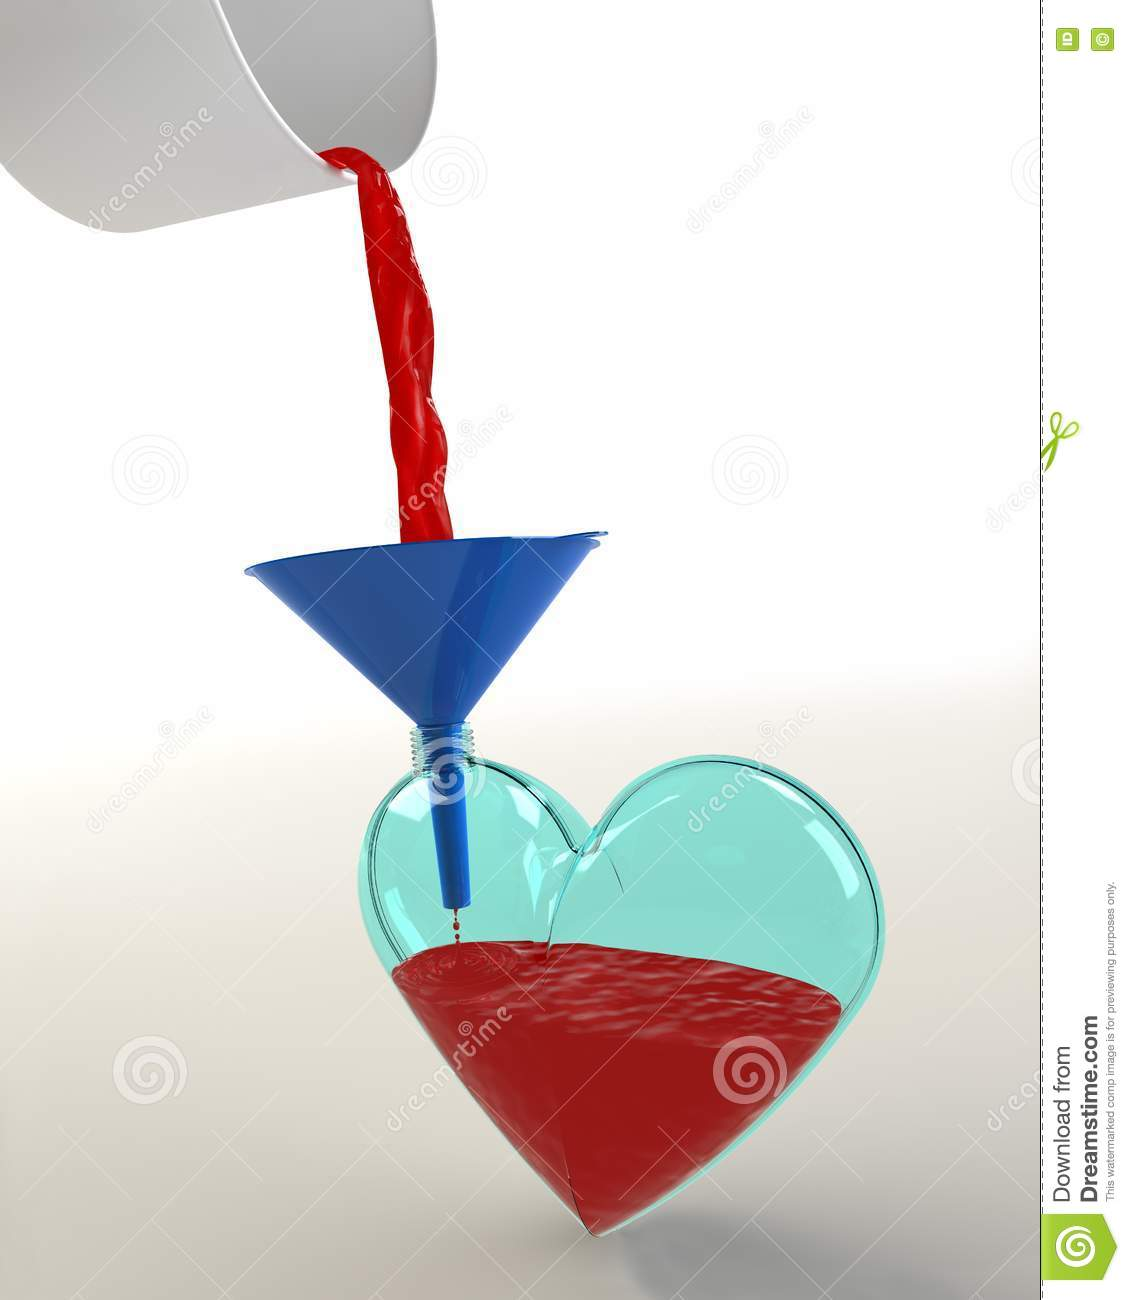 Fill The Heart Save A Life Stock Images